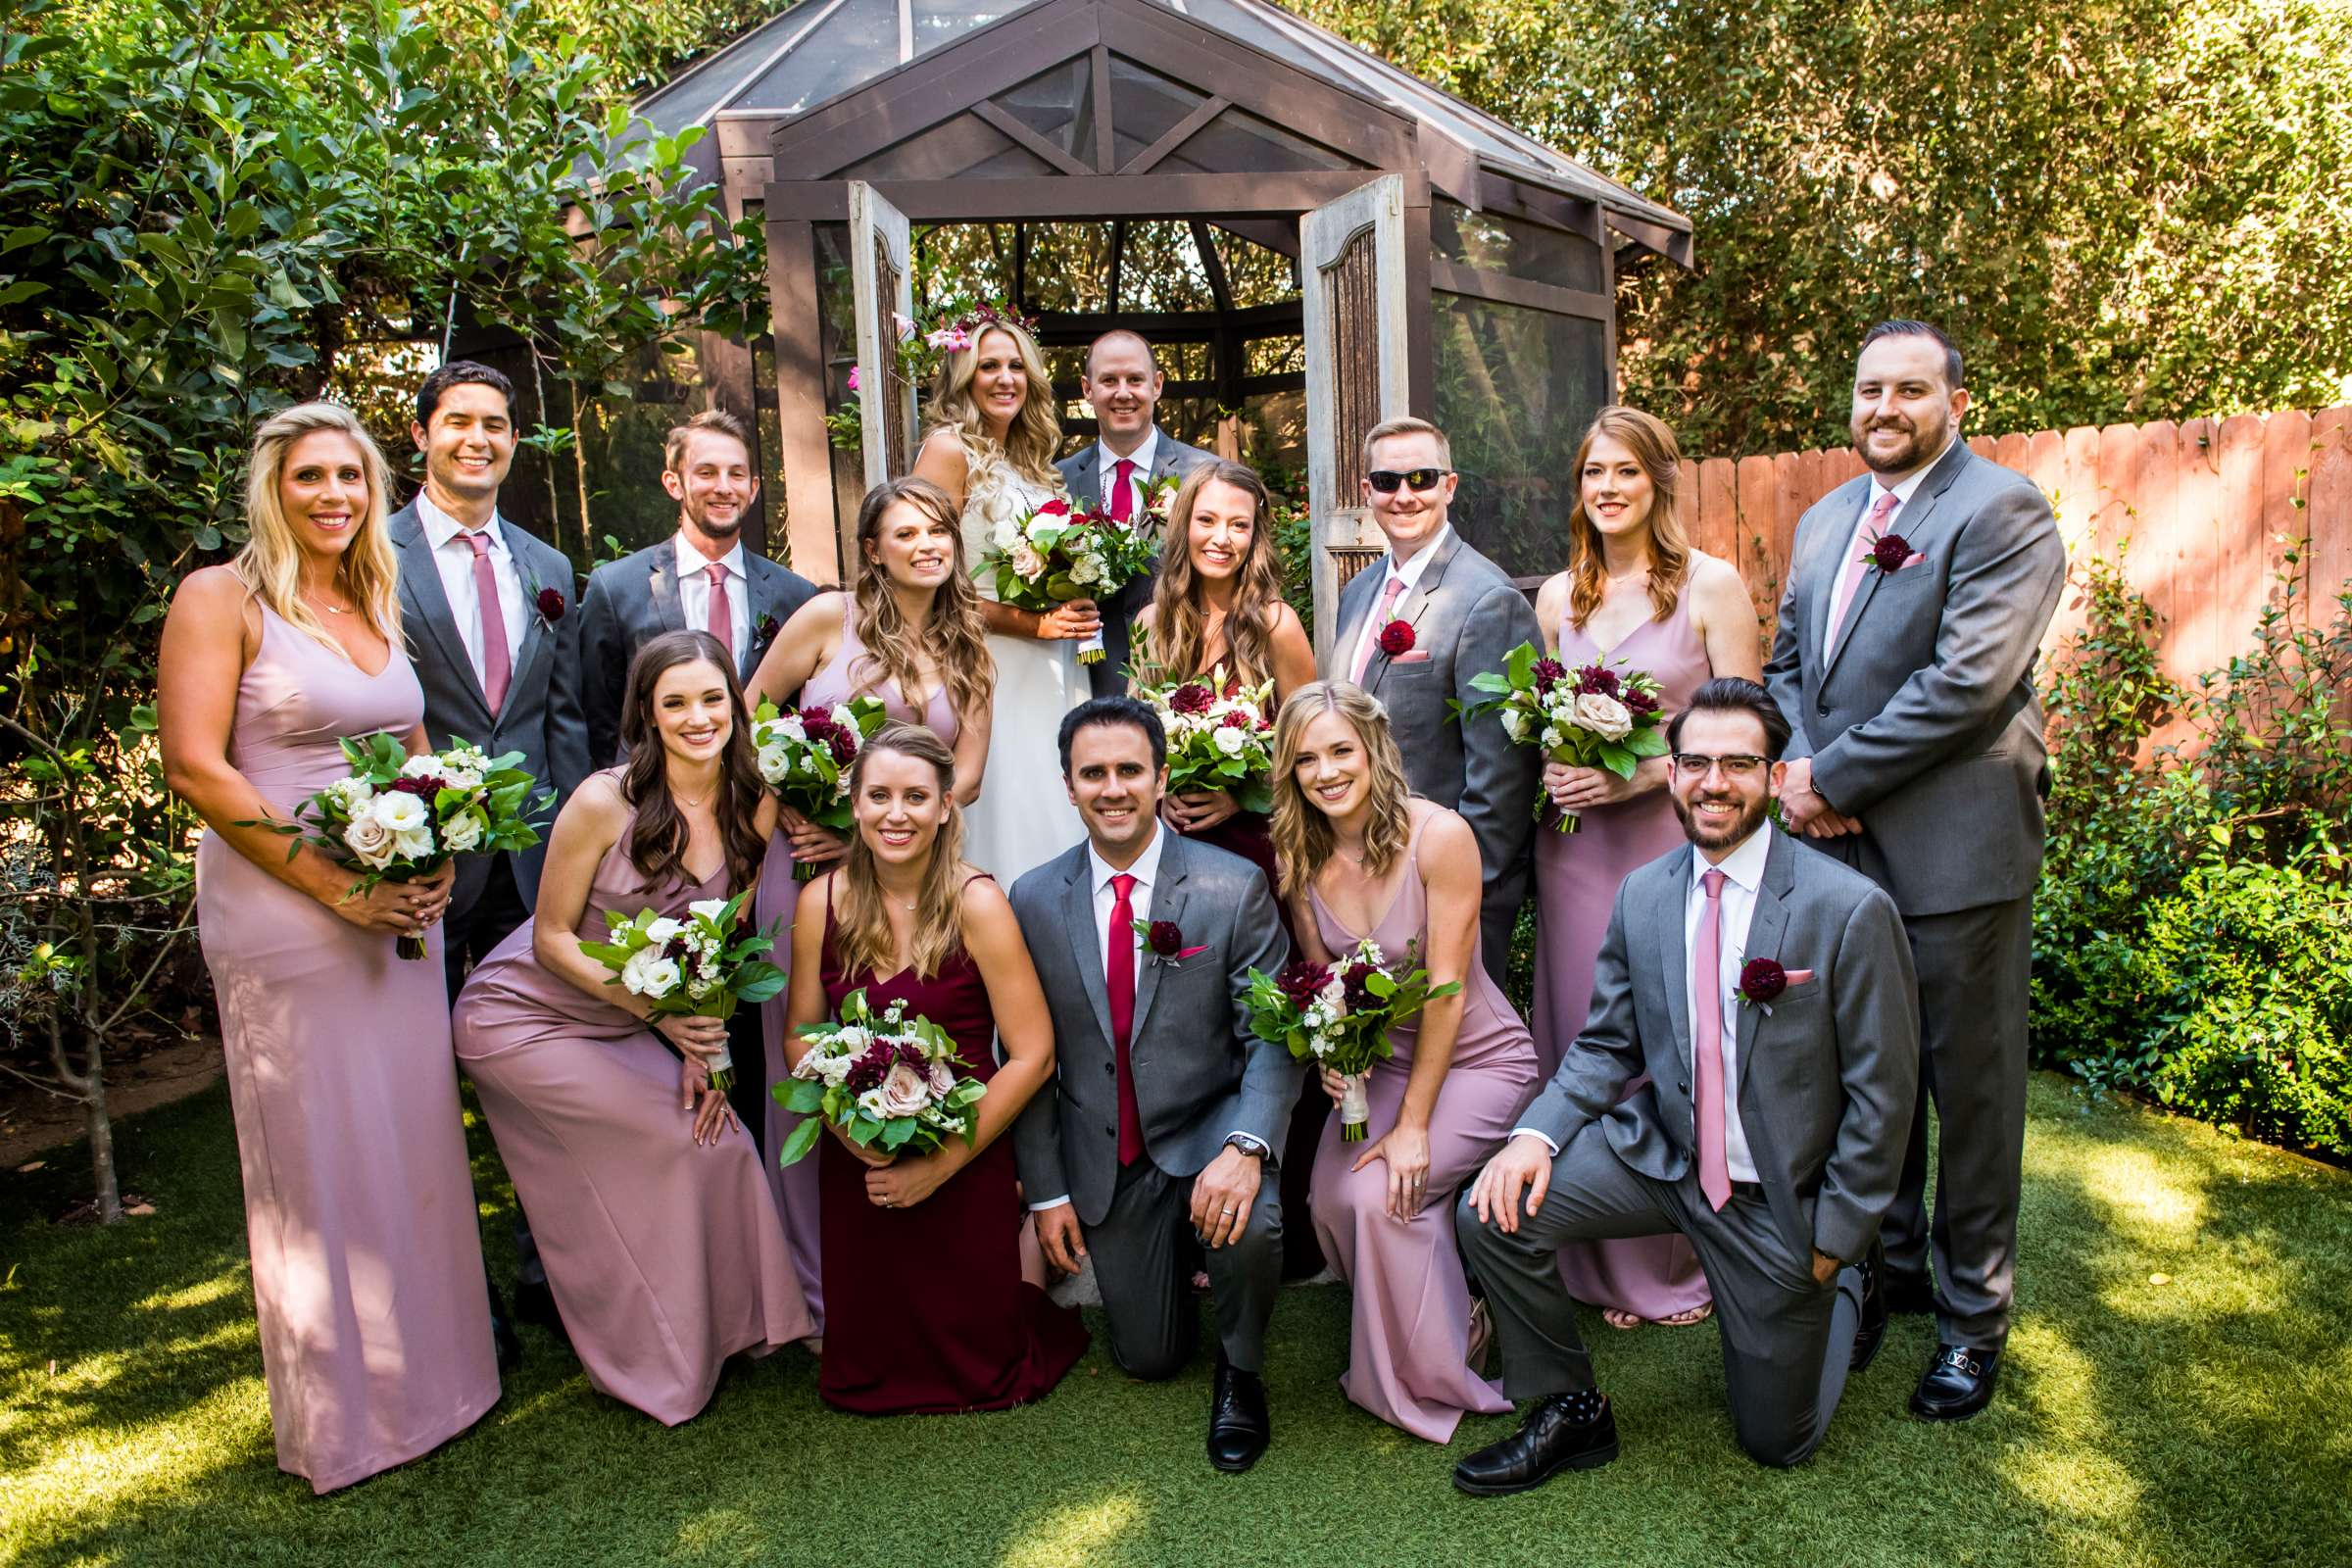 Twin Oaks House & Gardens Wedding Estate Wedding, Brittany and Sean Wedding Photo #10 by True Photography